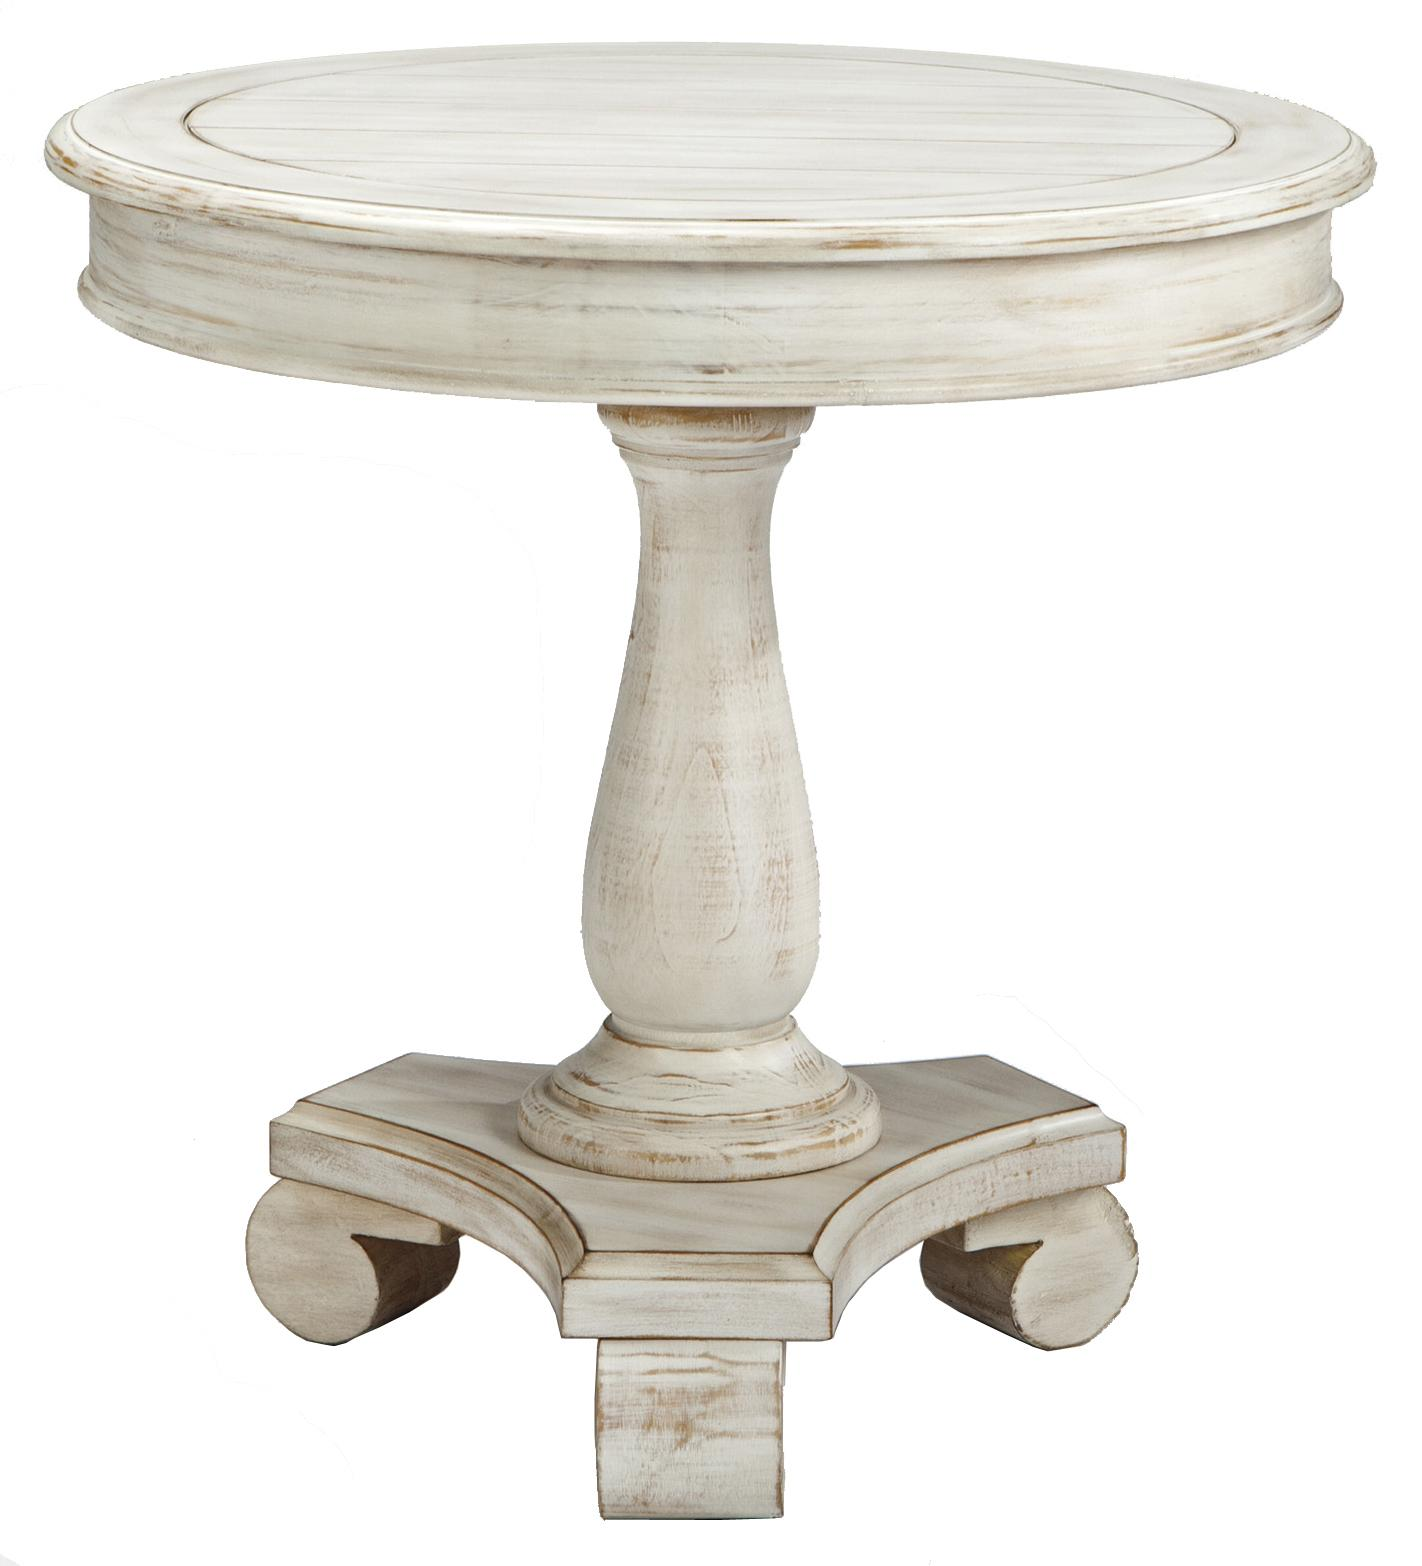 signature design ashley mirimyn round accent table products color cottage accents end monarch hall console cappuccino big umbrella urban loft furniture decorative storage cabinets